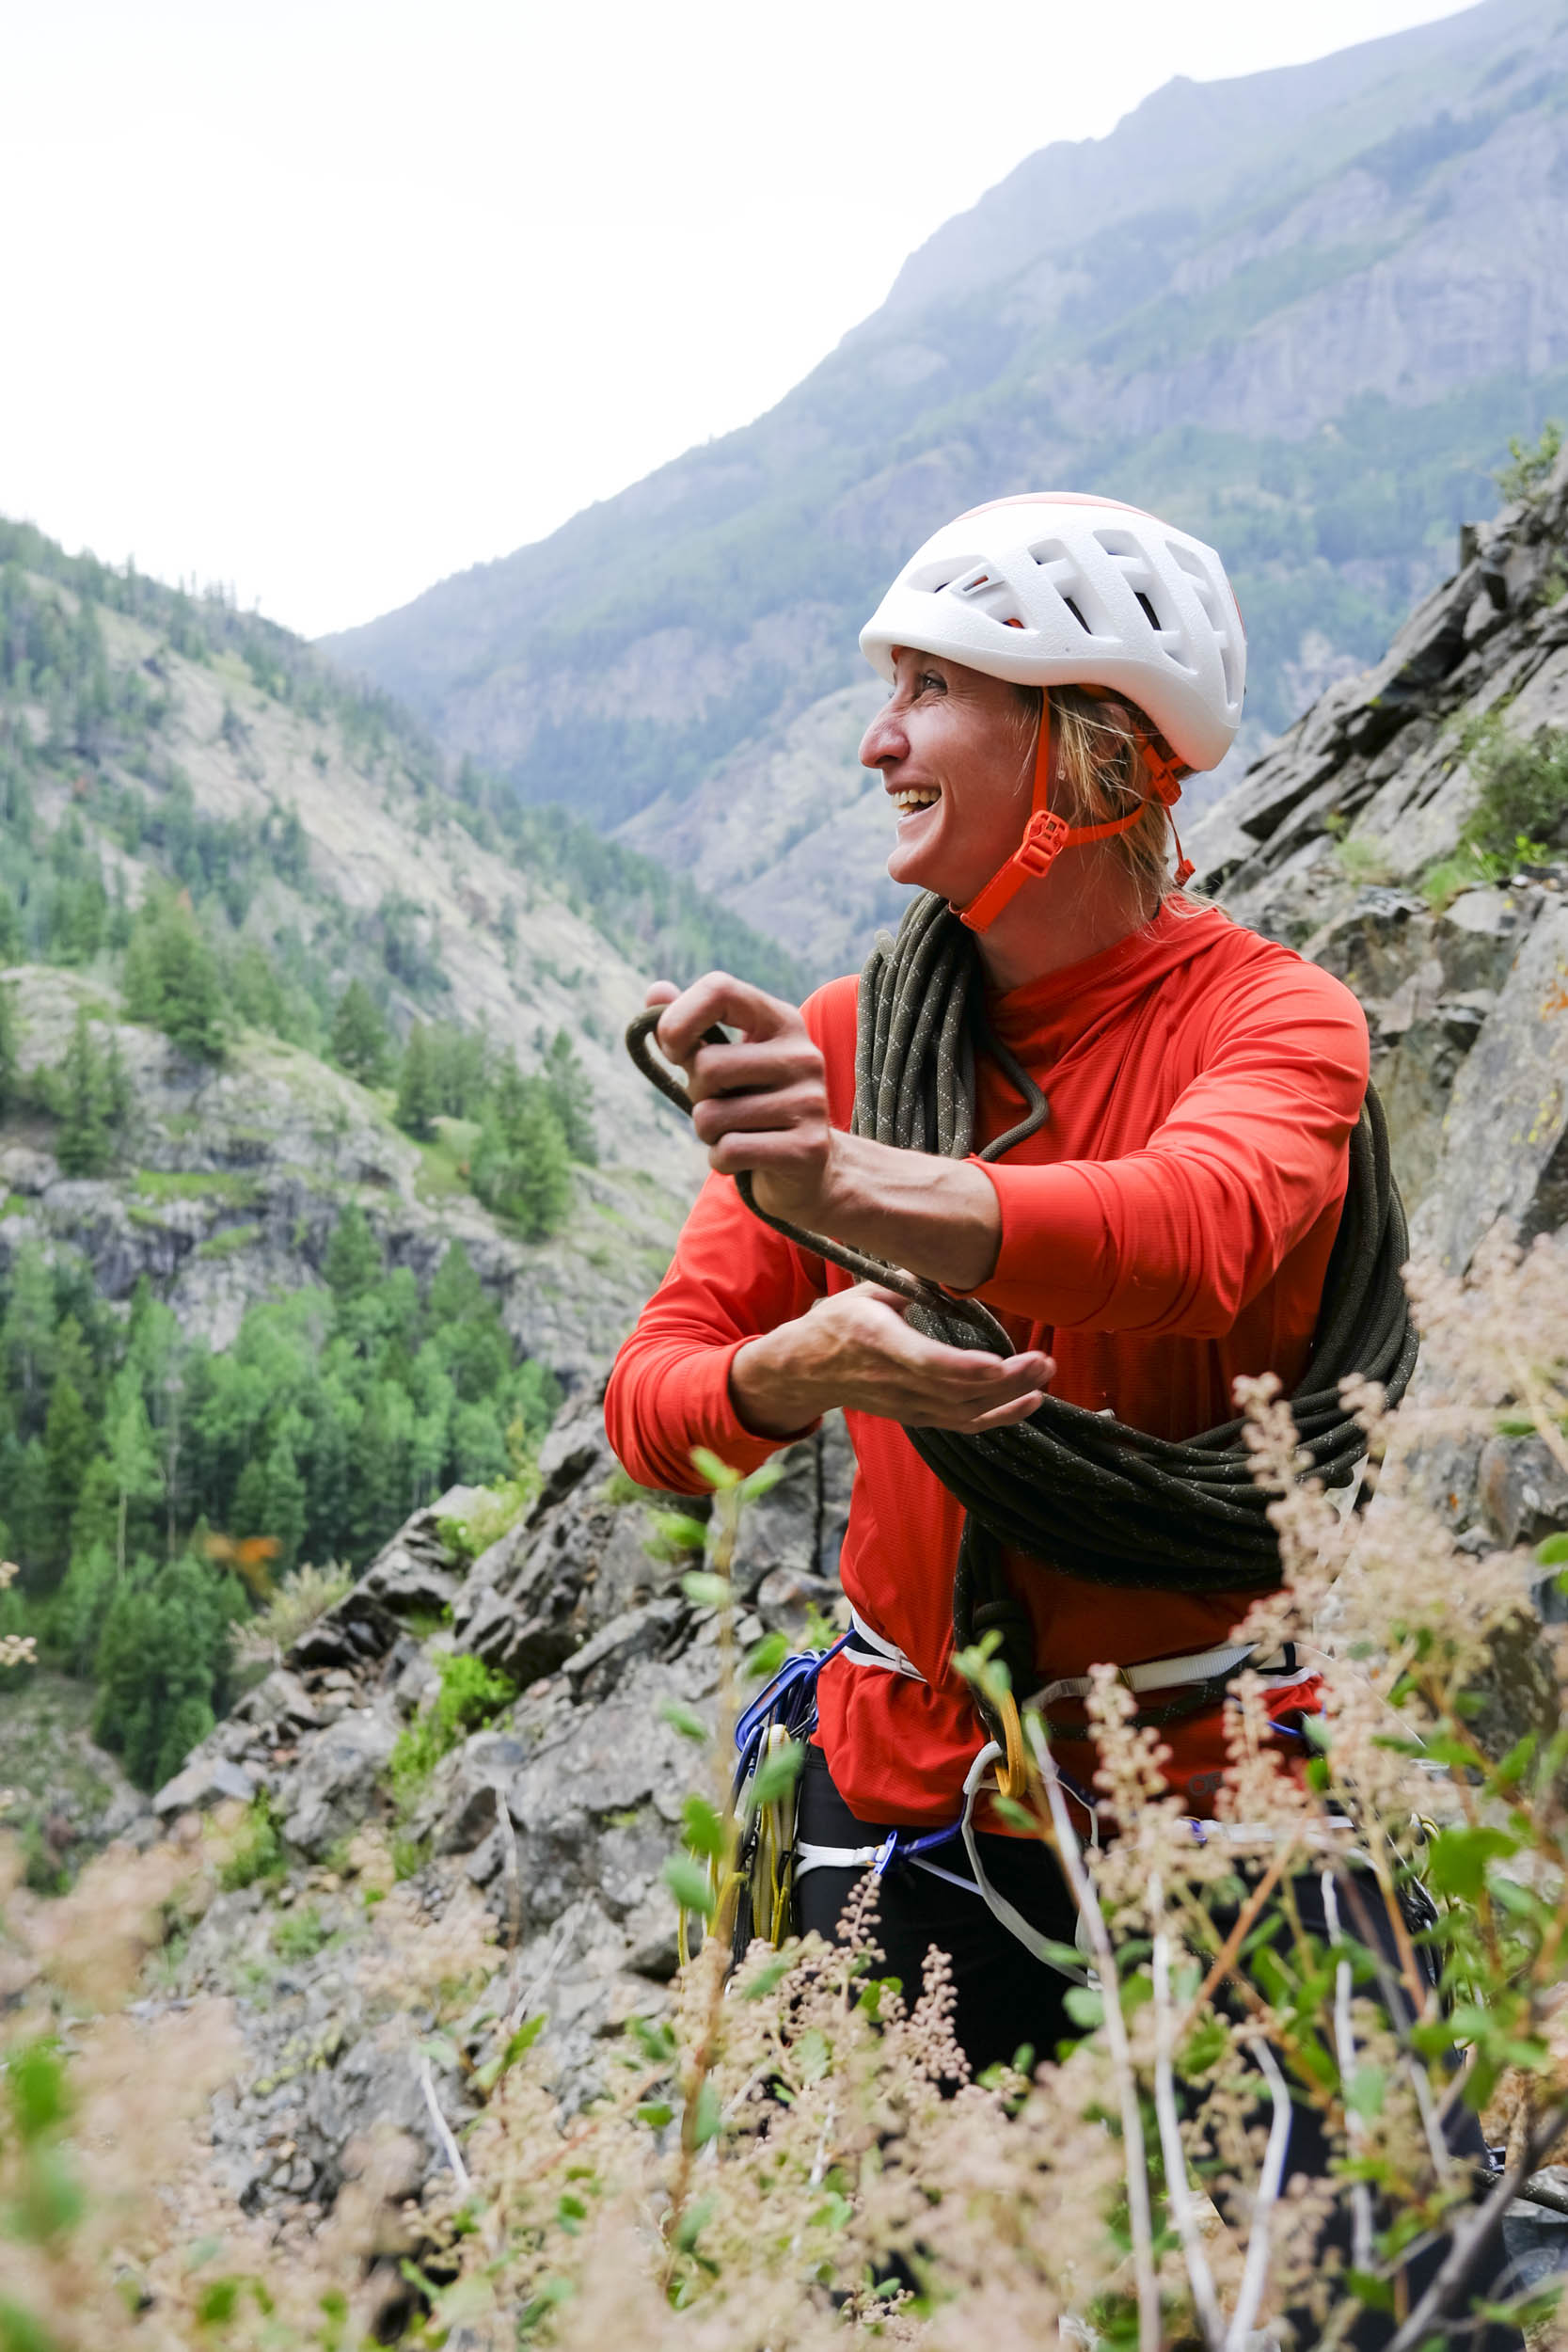 Kristin Arnold guide and climber